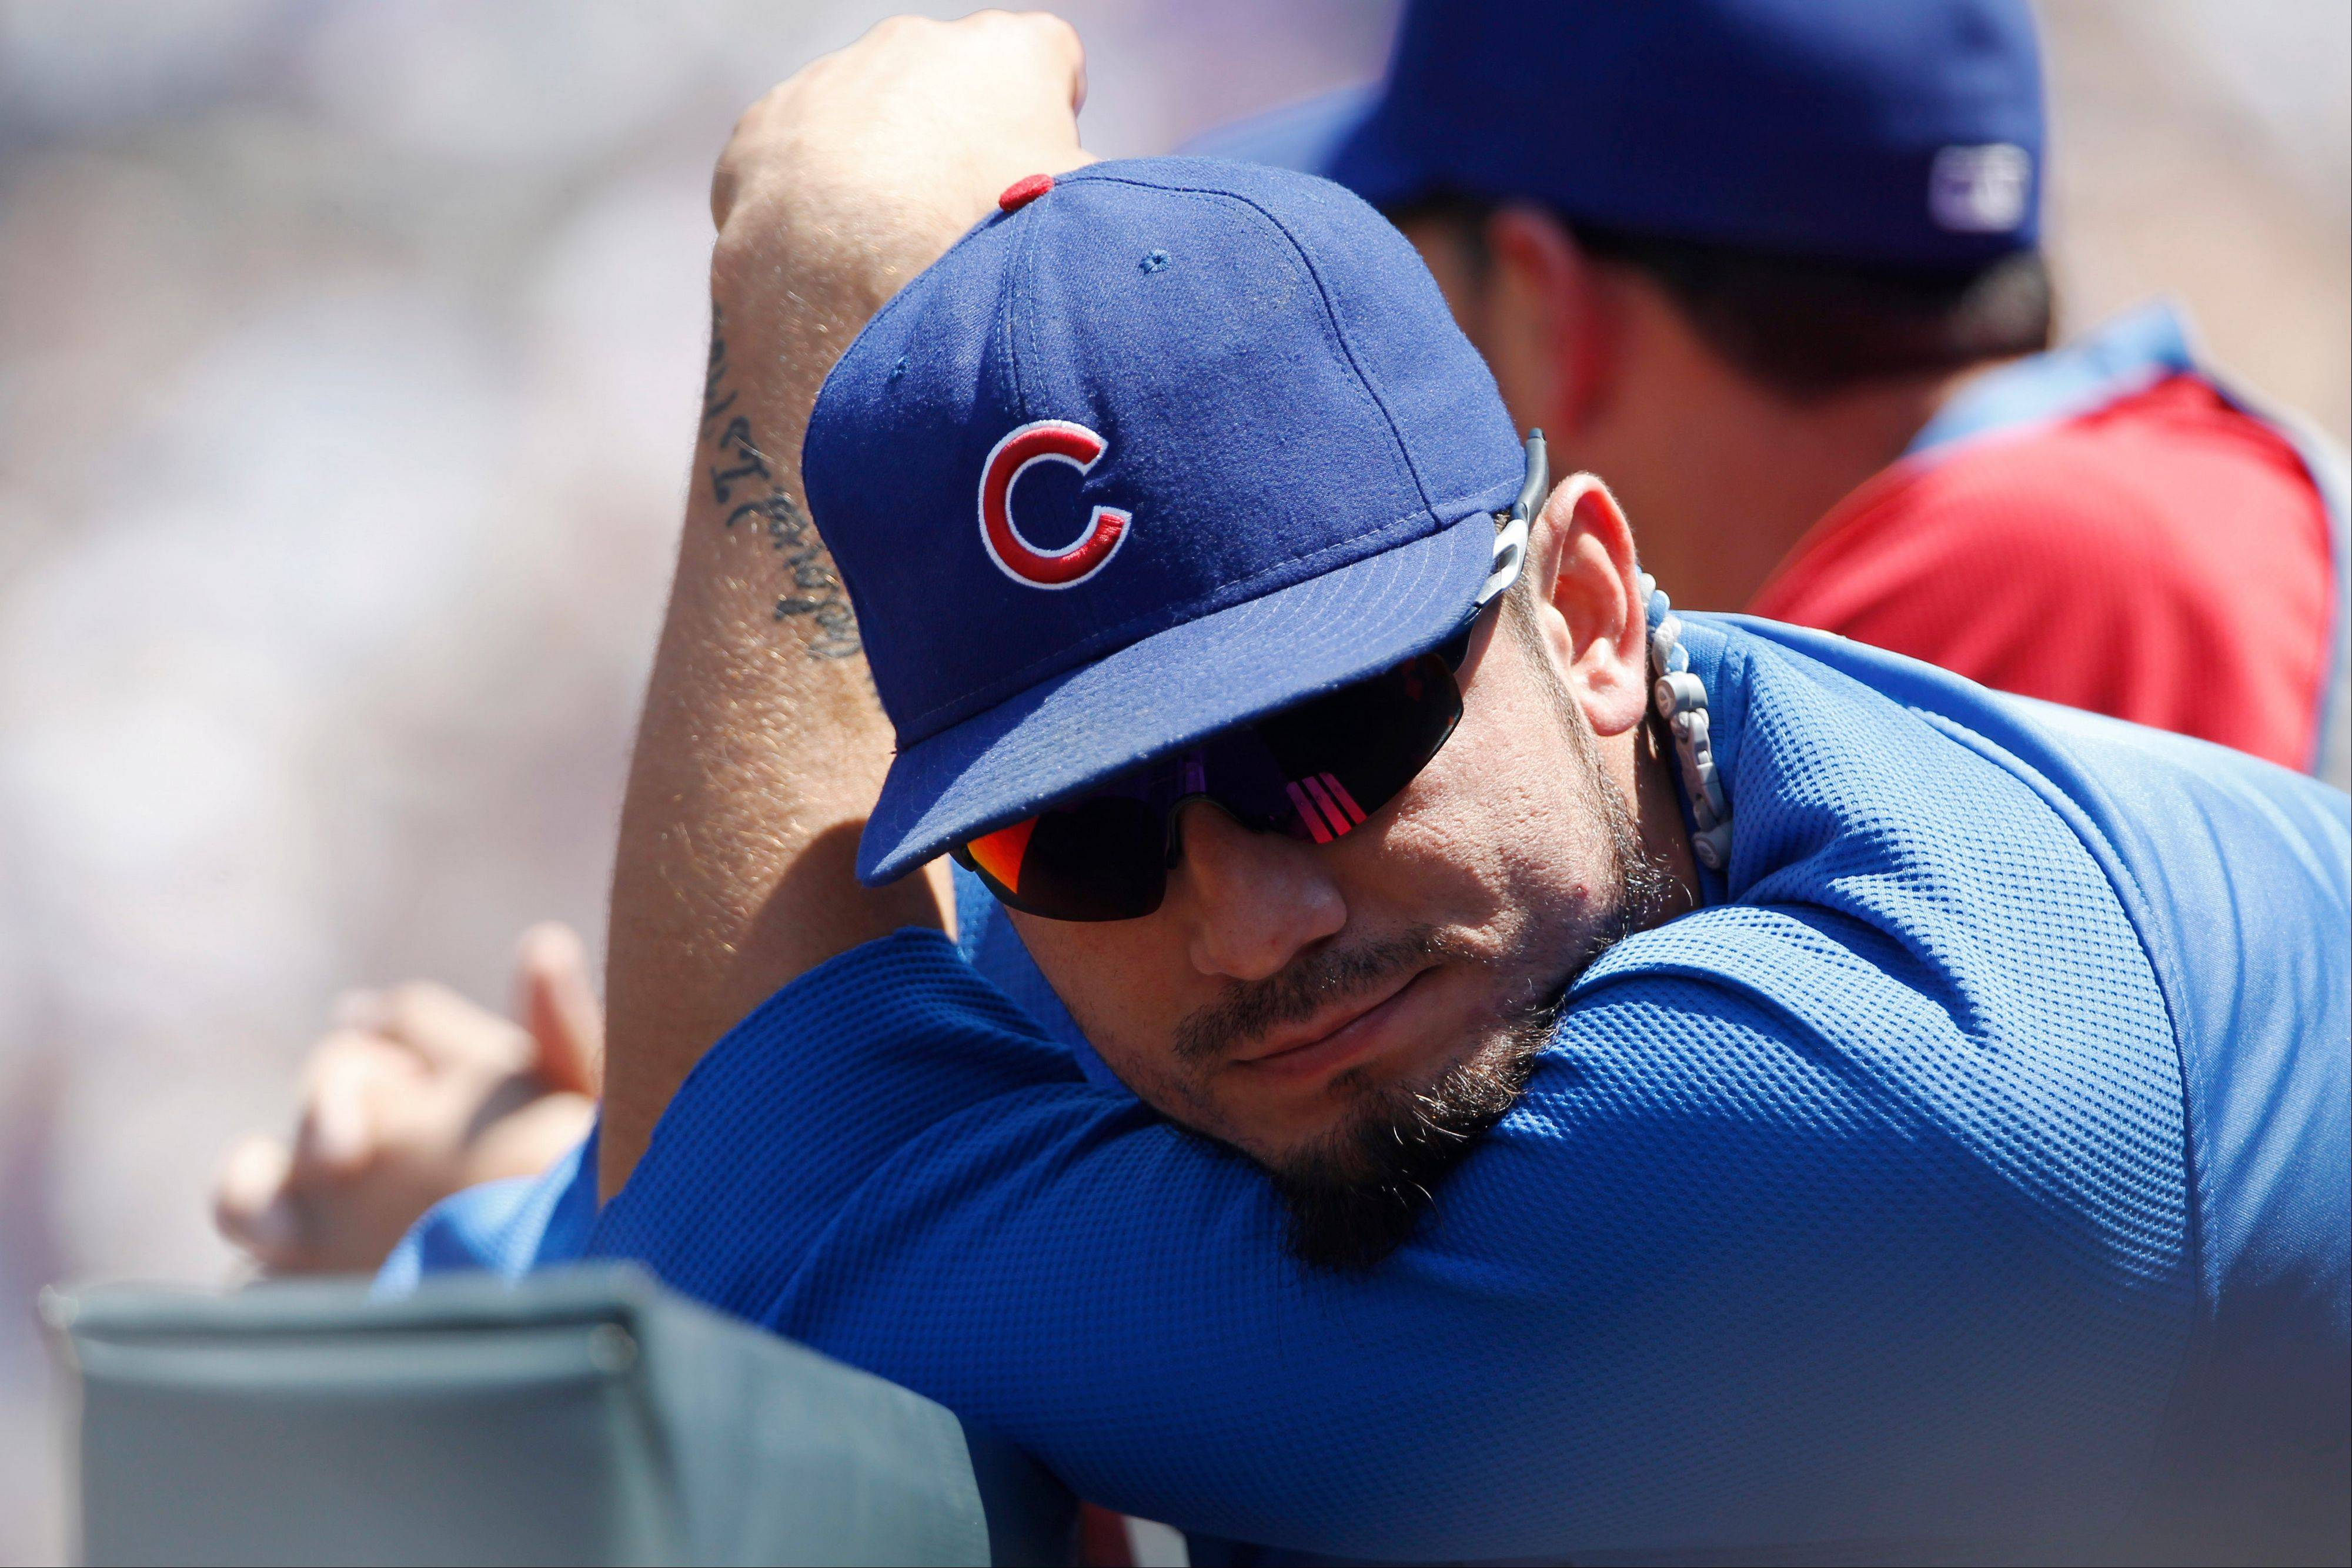 Matt Garza spends what would be his last day in the Cubs' dugout Sunday at Colorado. On Monday, the Cubs traded Garza to the Texas Rangers for four or possibly five prospects.